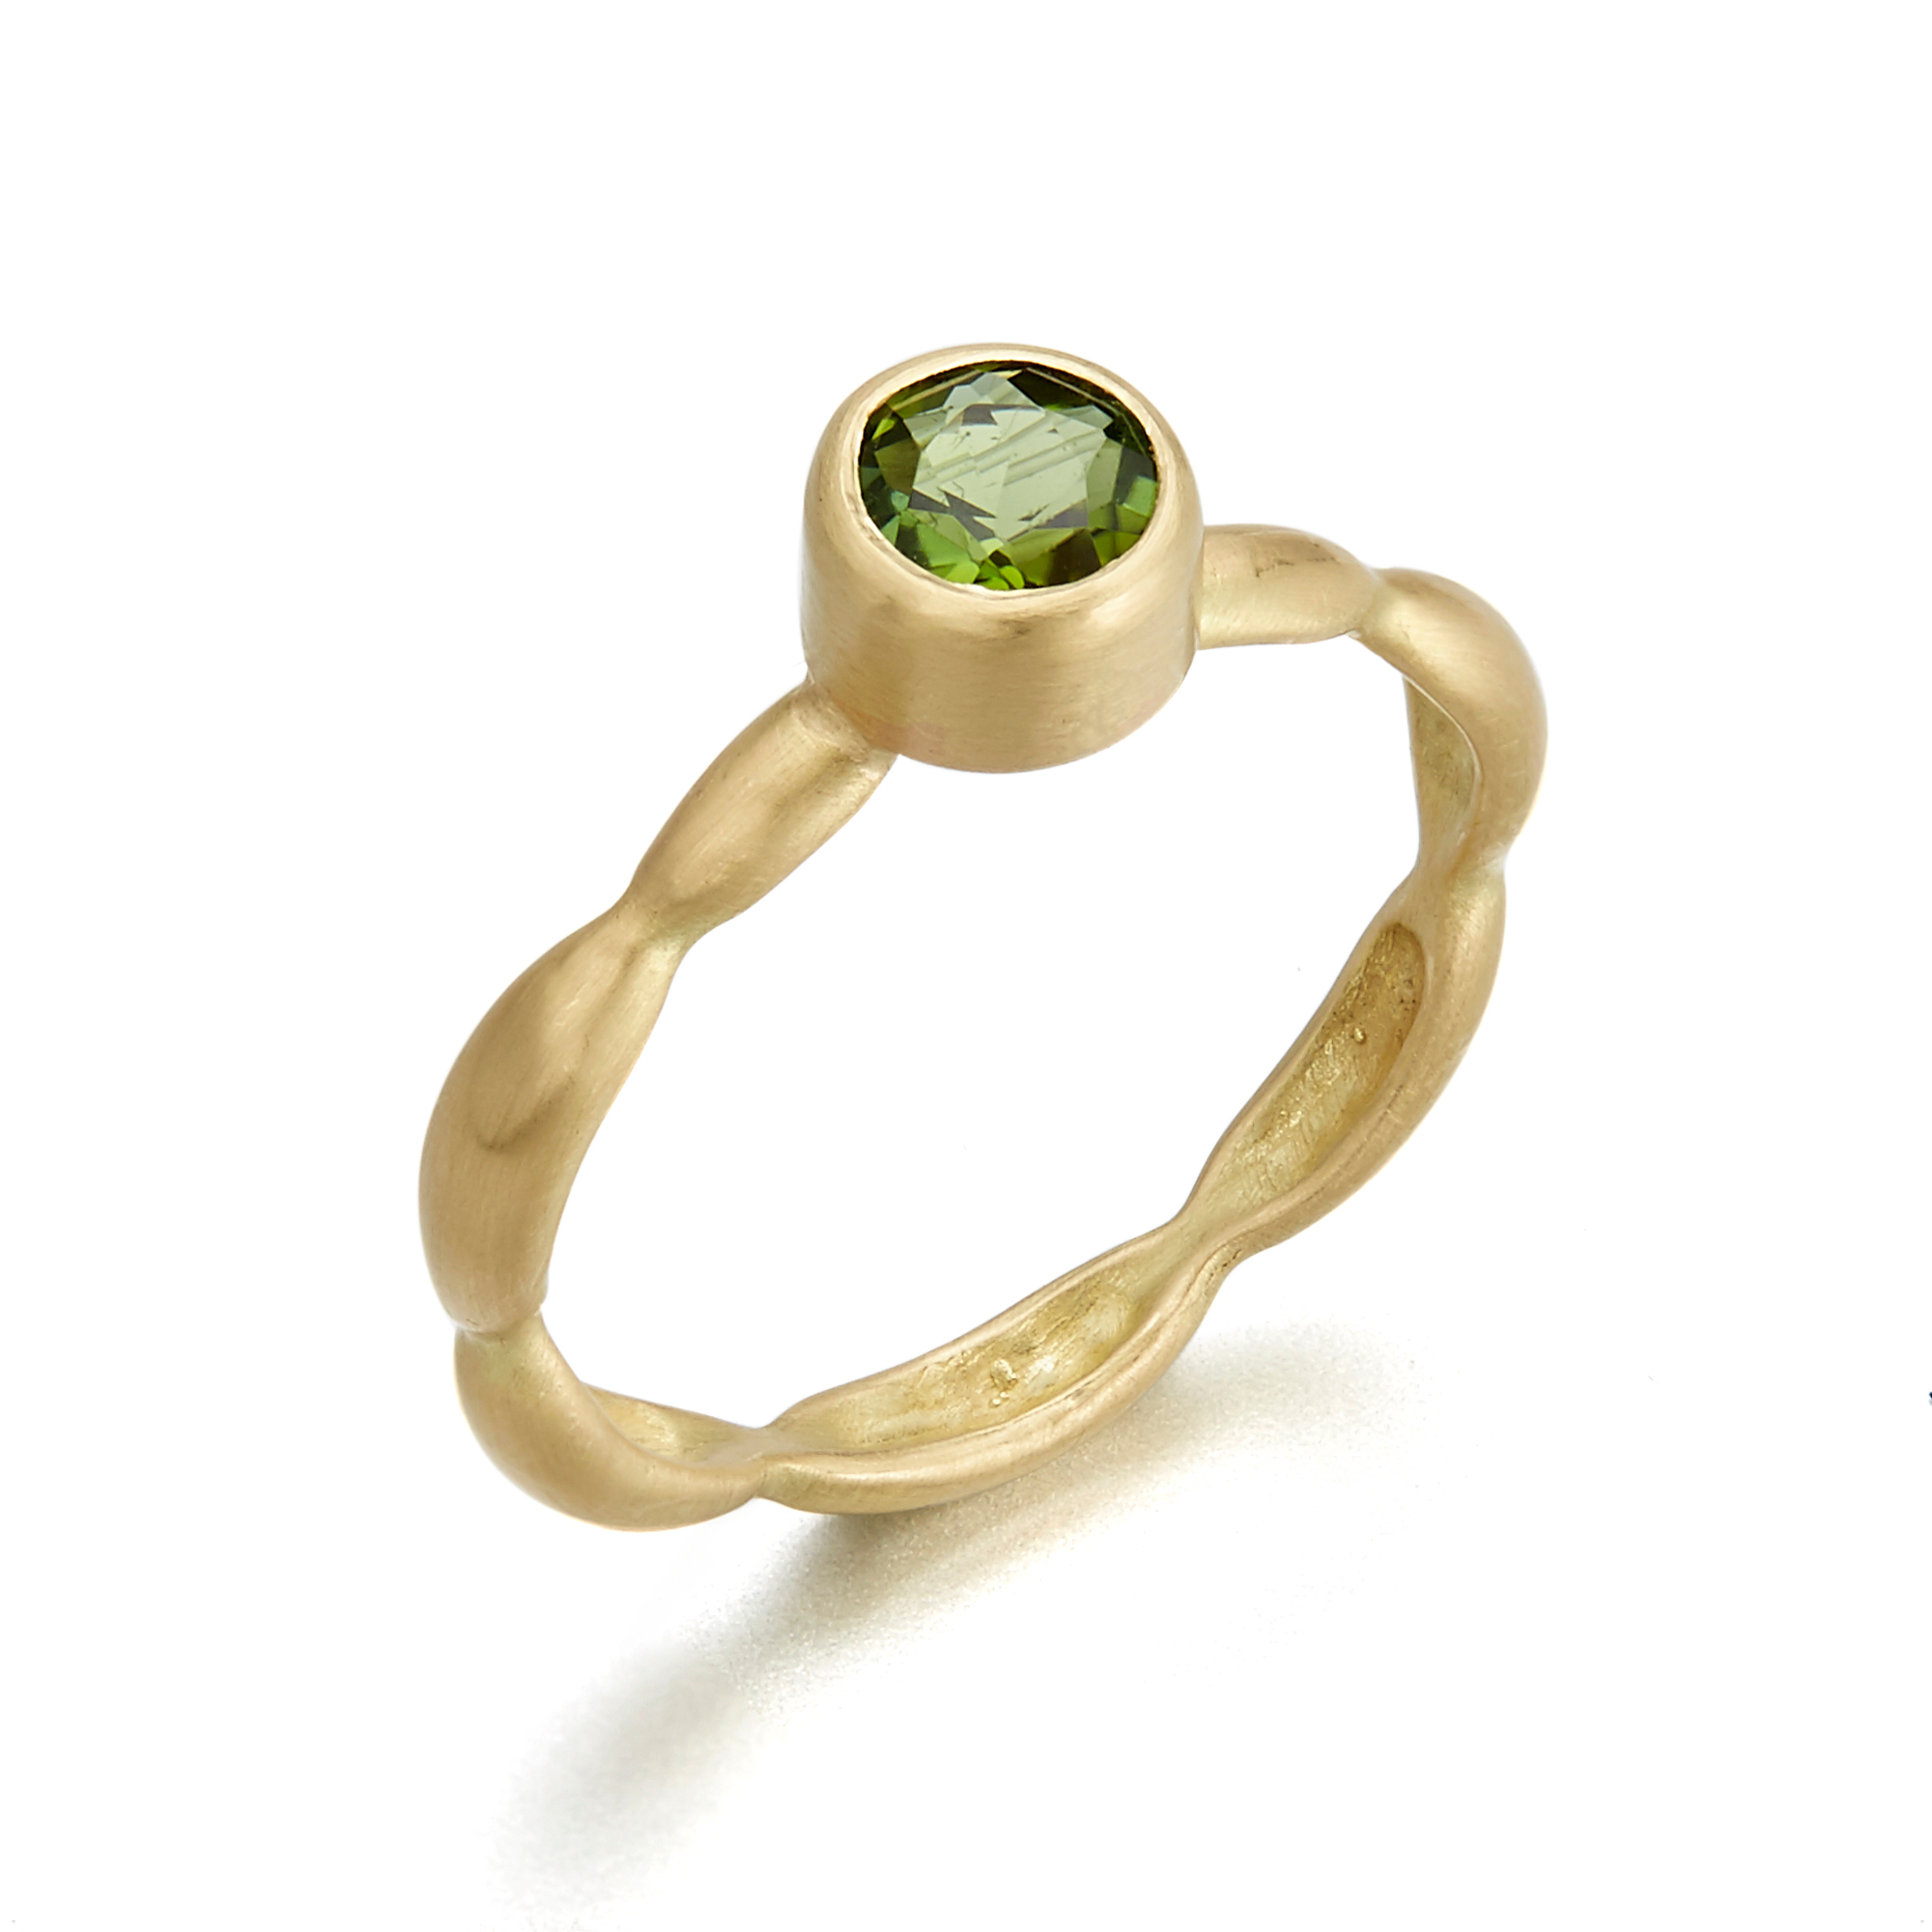 Monica Marcella Round Green Tourmaline Onidita Ring